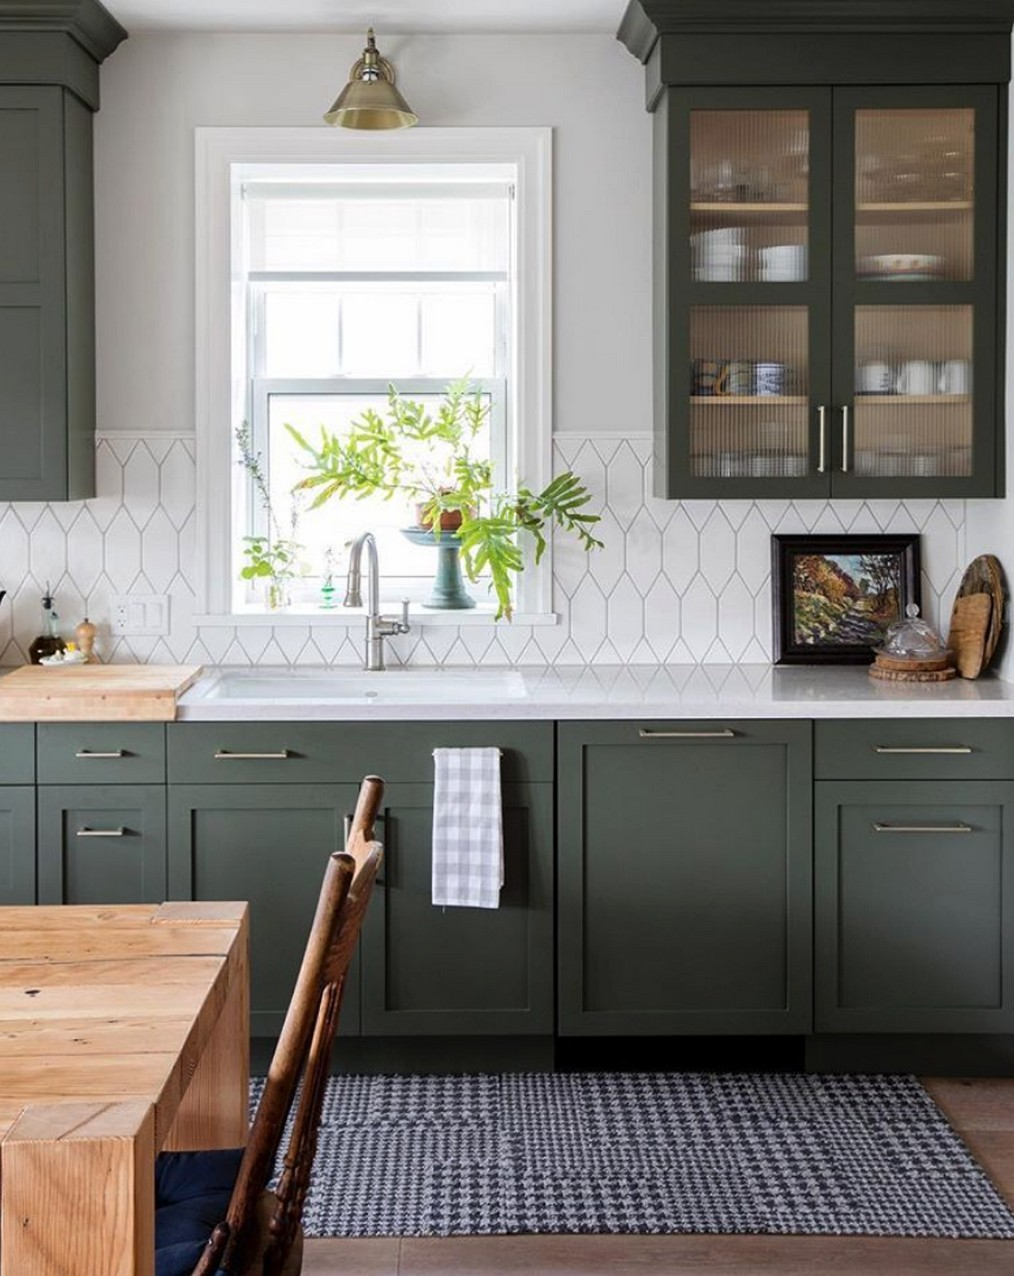 71 Painted Kitchen Cabinets Ideas For Home Decor 26